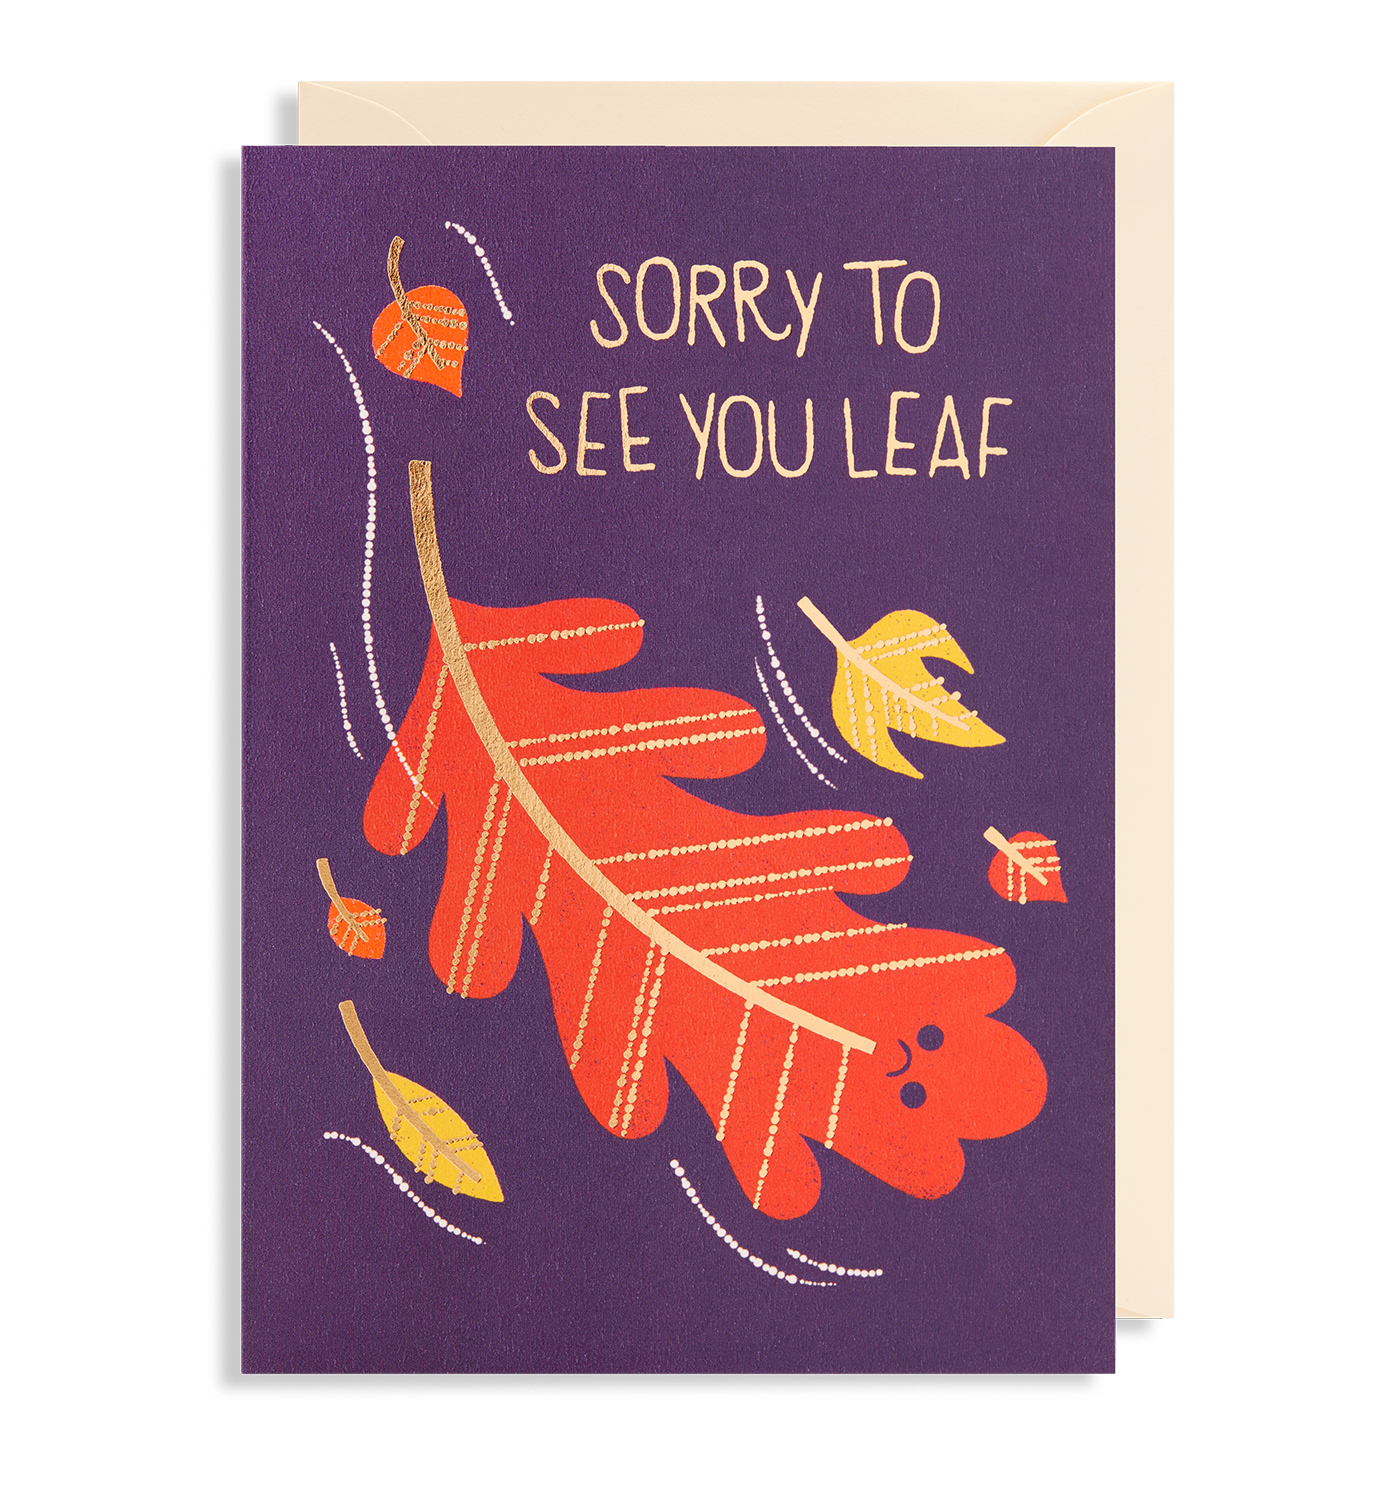 Sorry To See You Leaf